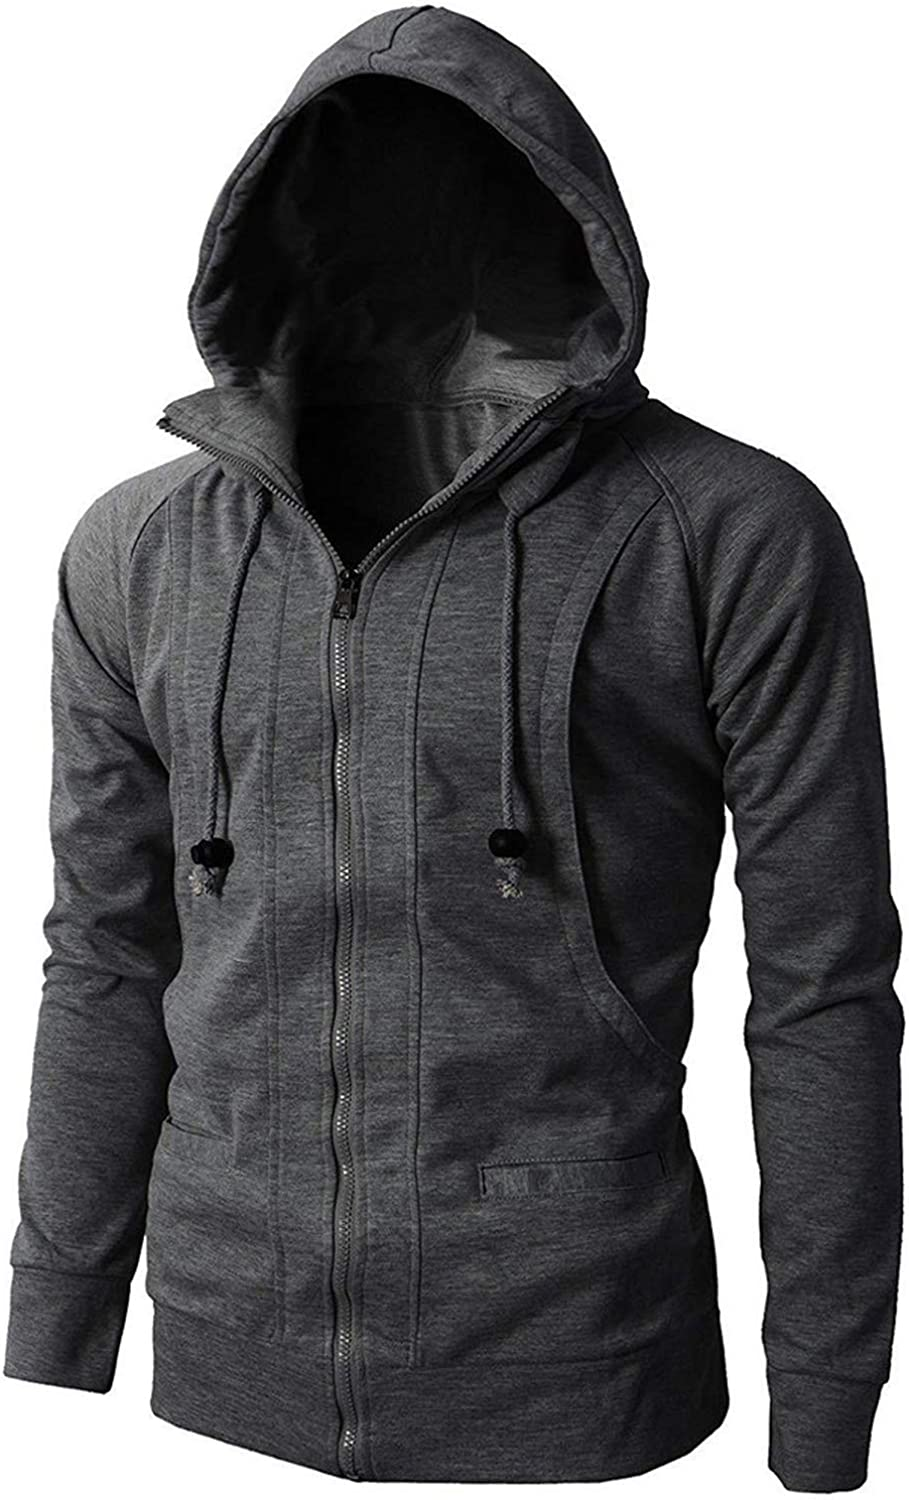 Autumn Winter Hoodie Sweatshirts Long Sleeve Sport Zipper Pullover Tops Men Hooded Sweatshirt